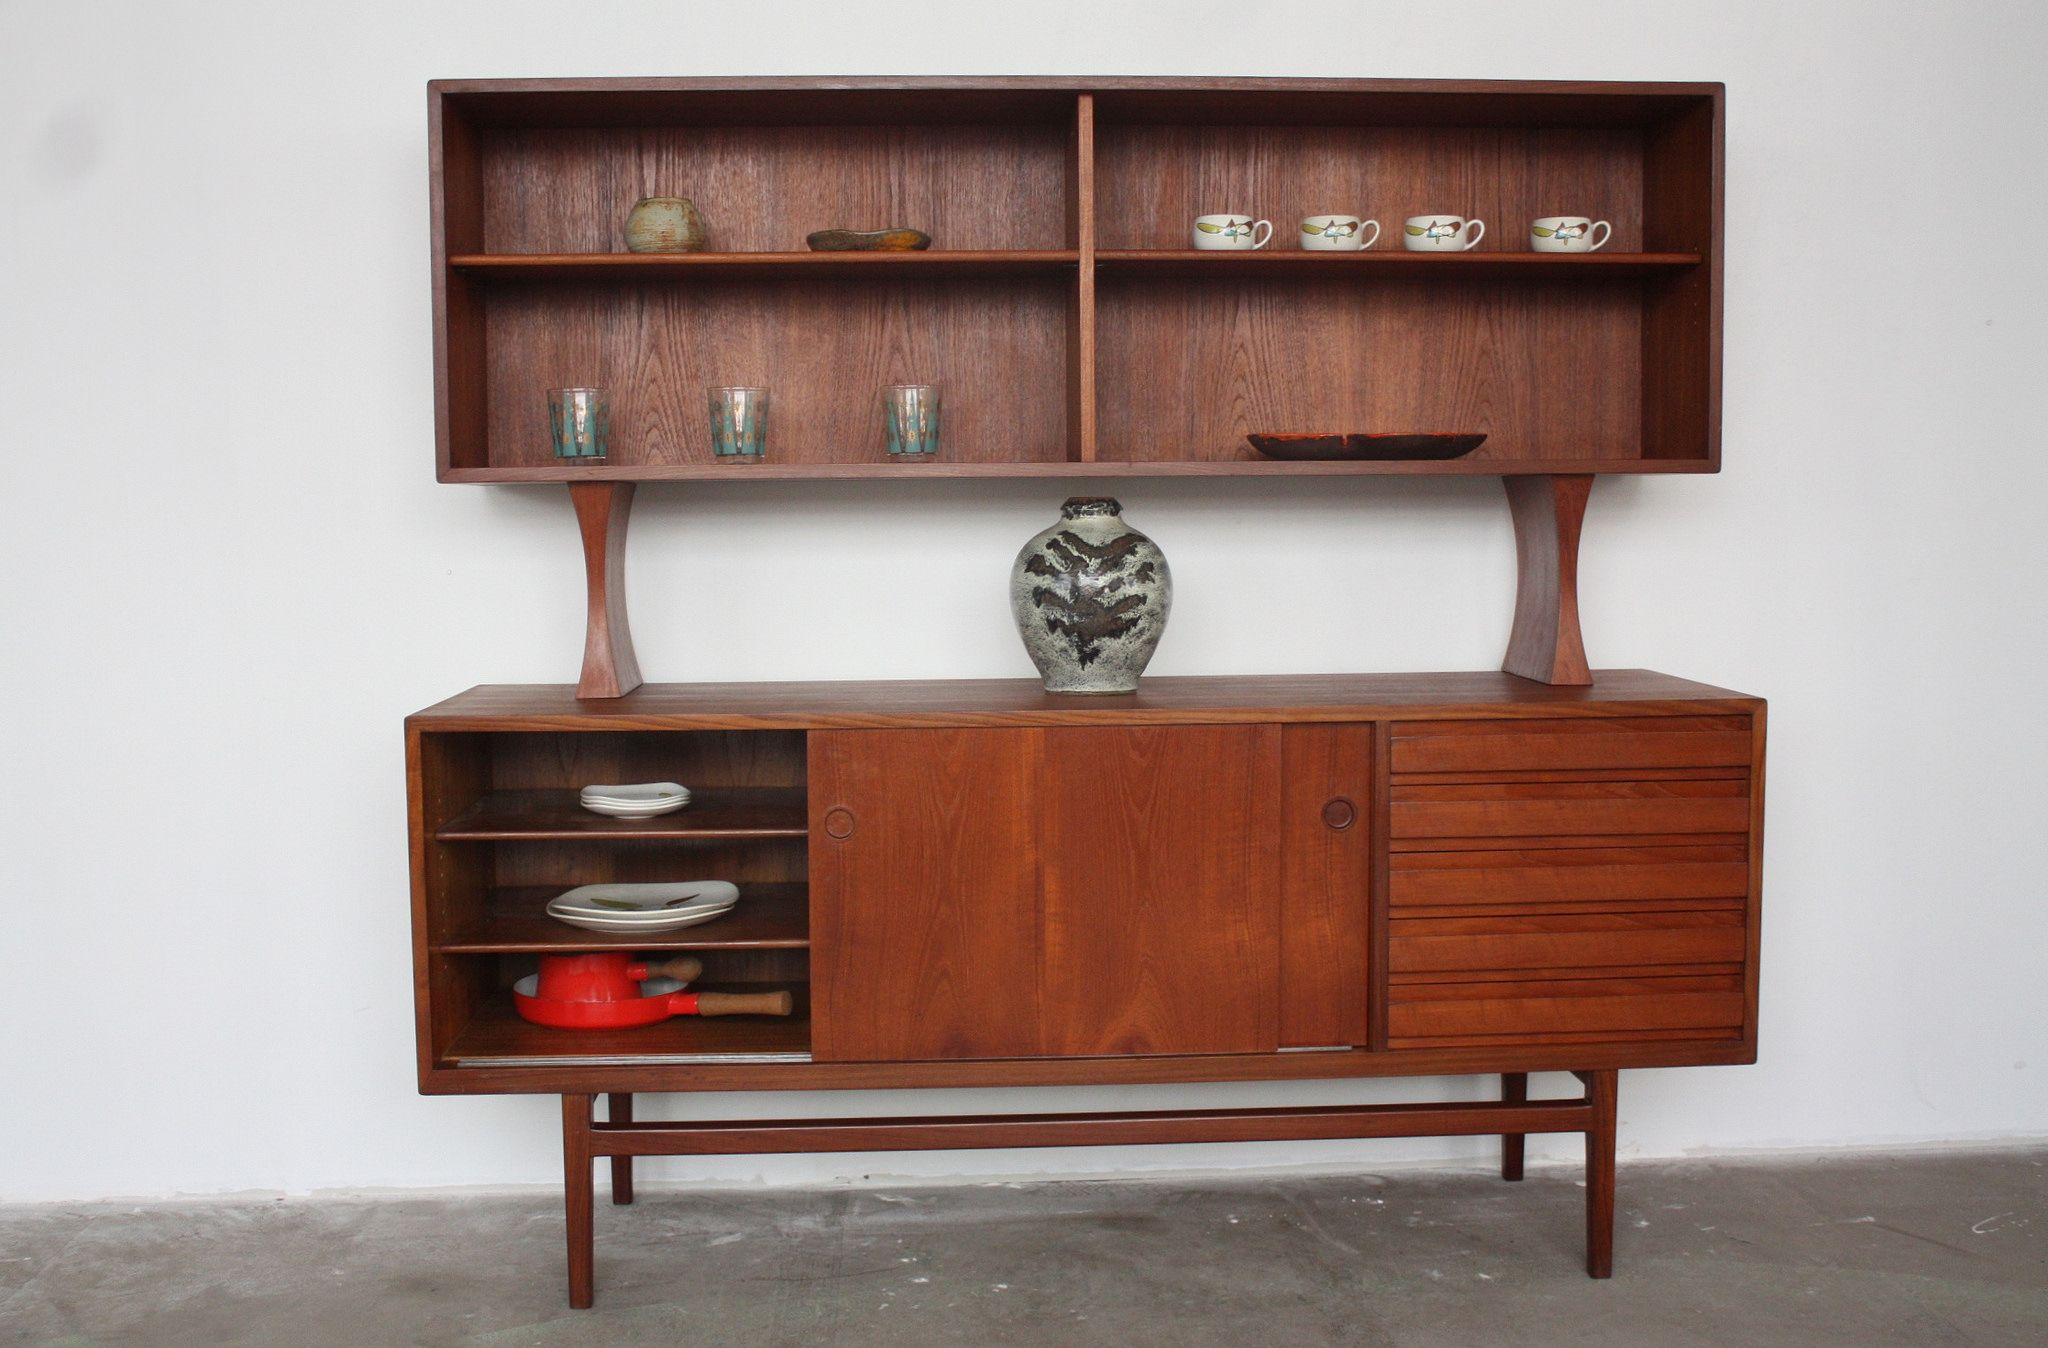 Festive Danish Midcentury Modern Teak Sideboard Credenza With Floating Hutch